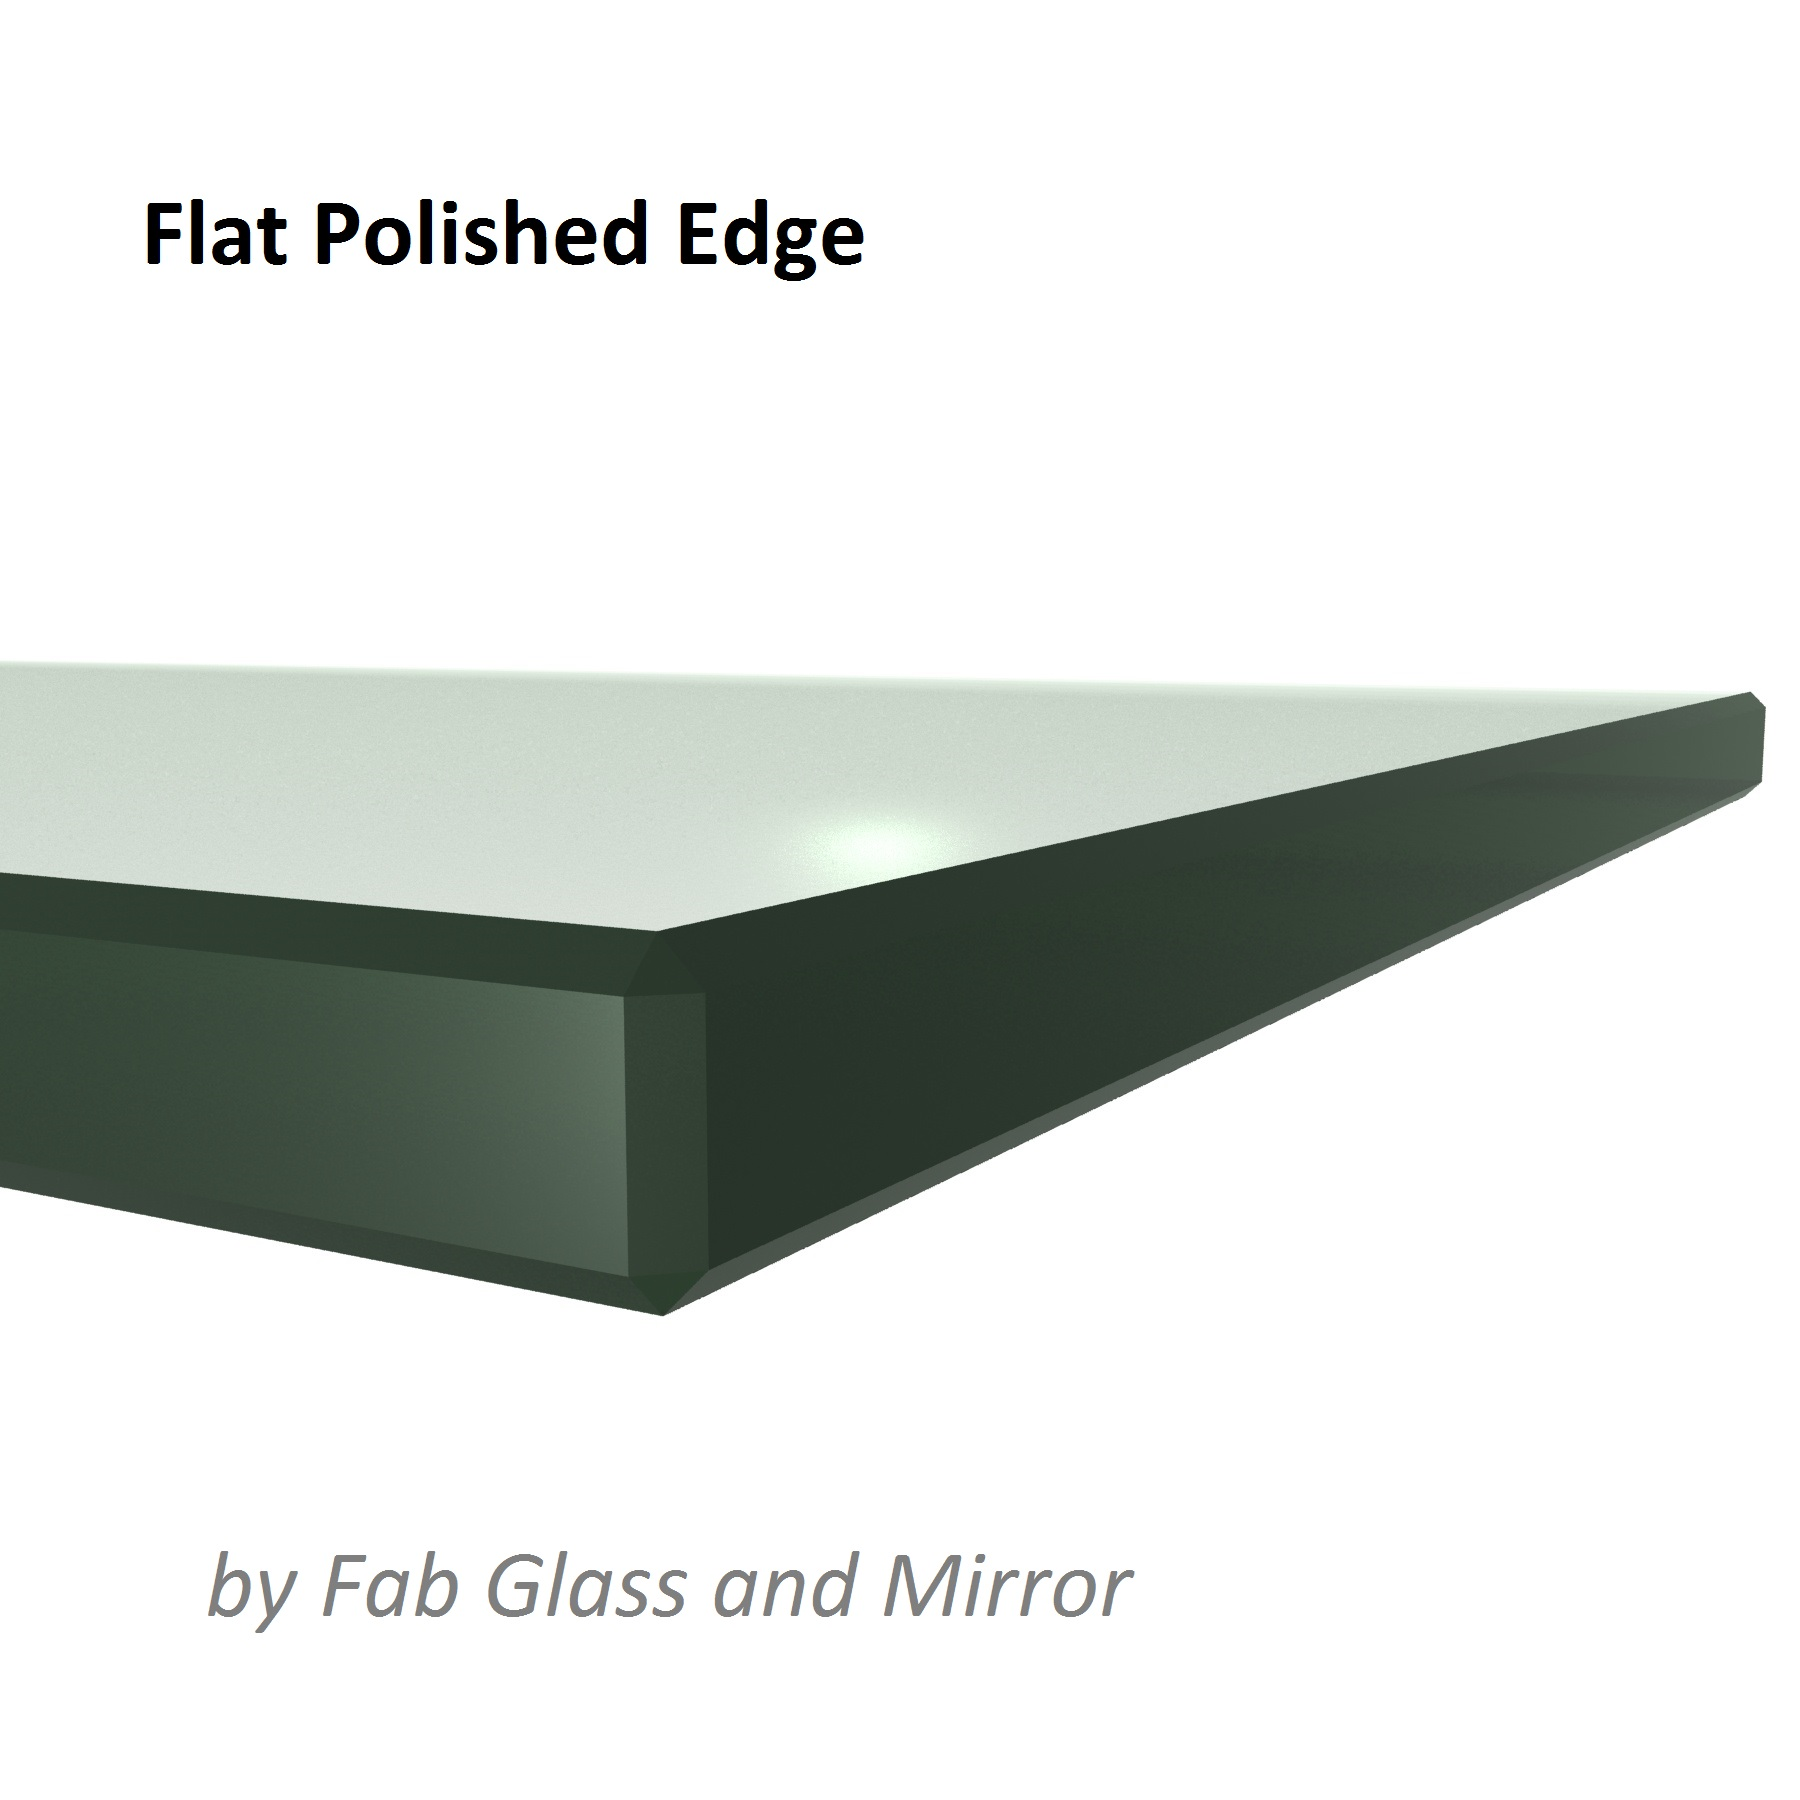 Fab Glass and Mirror Square Clear Glass Table Top with Flat Polish